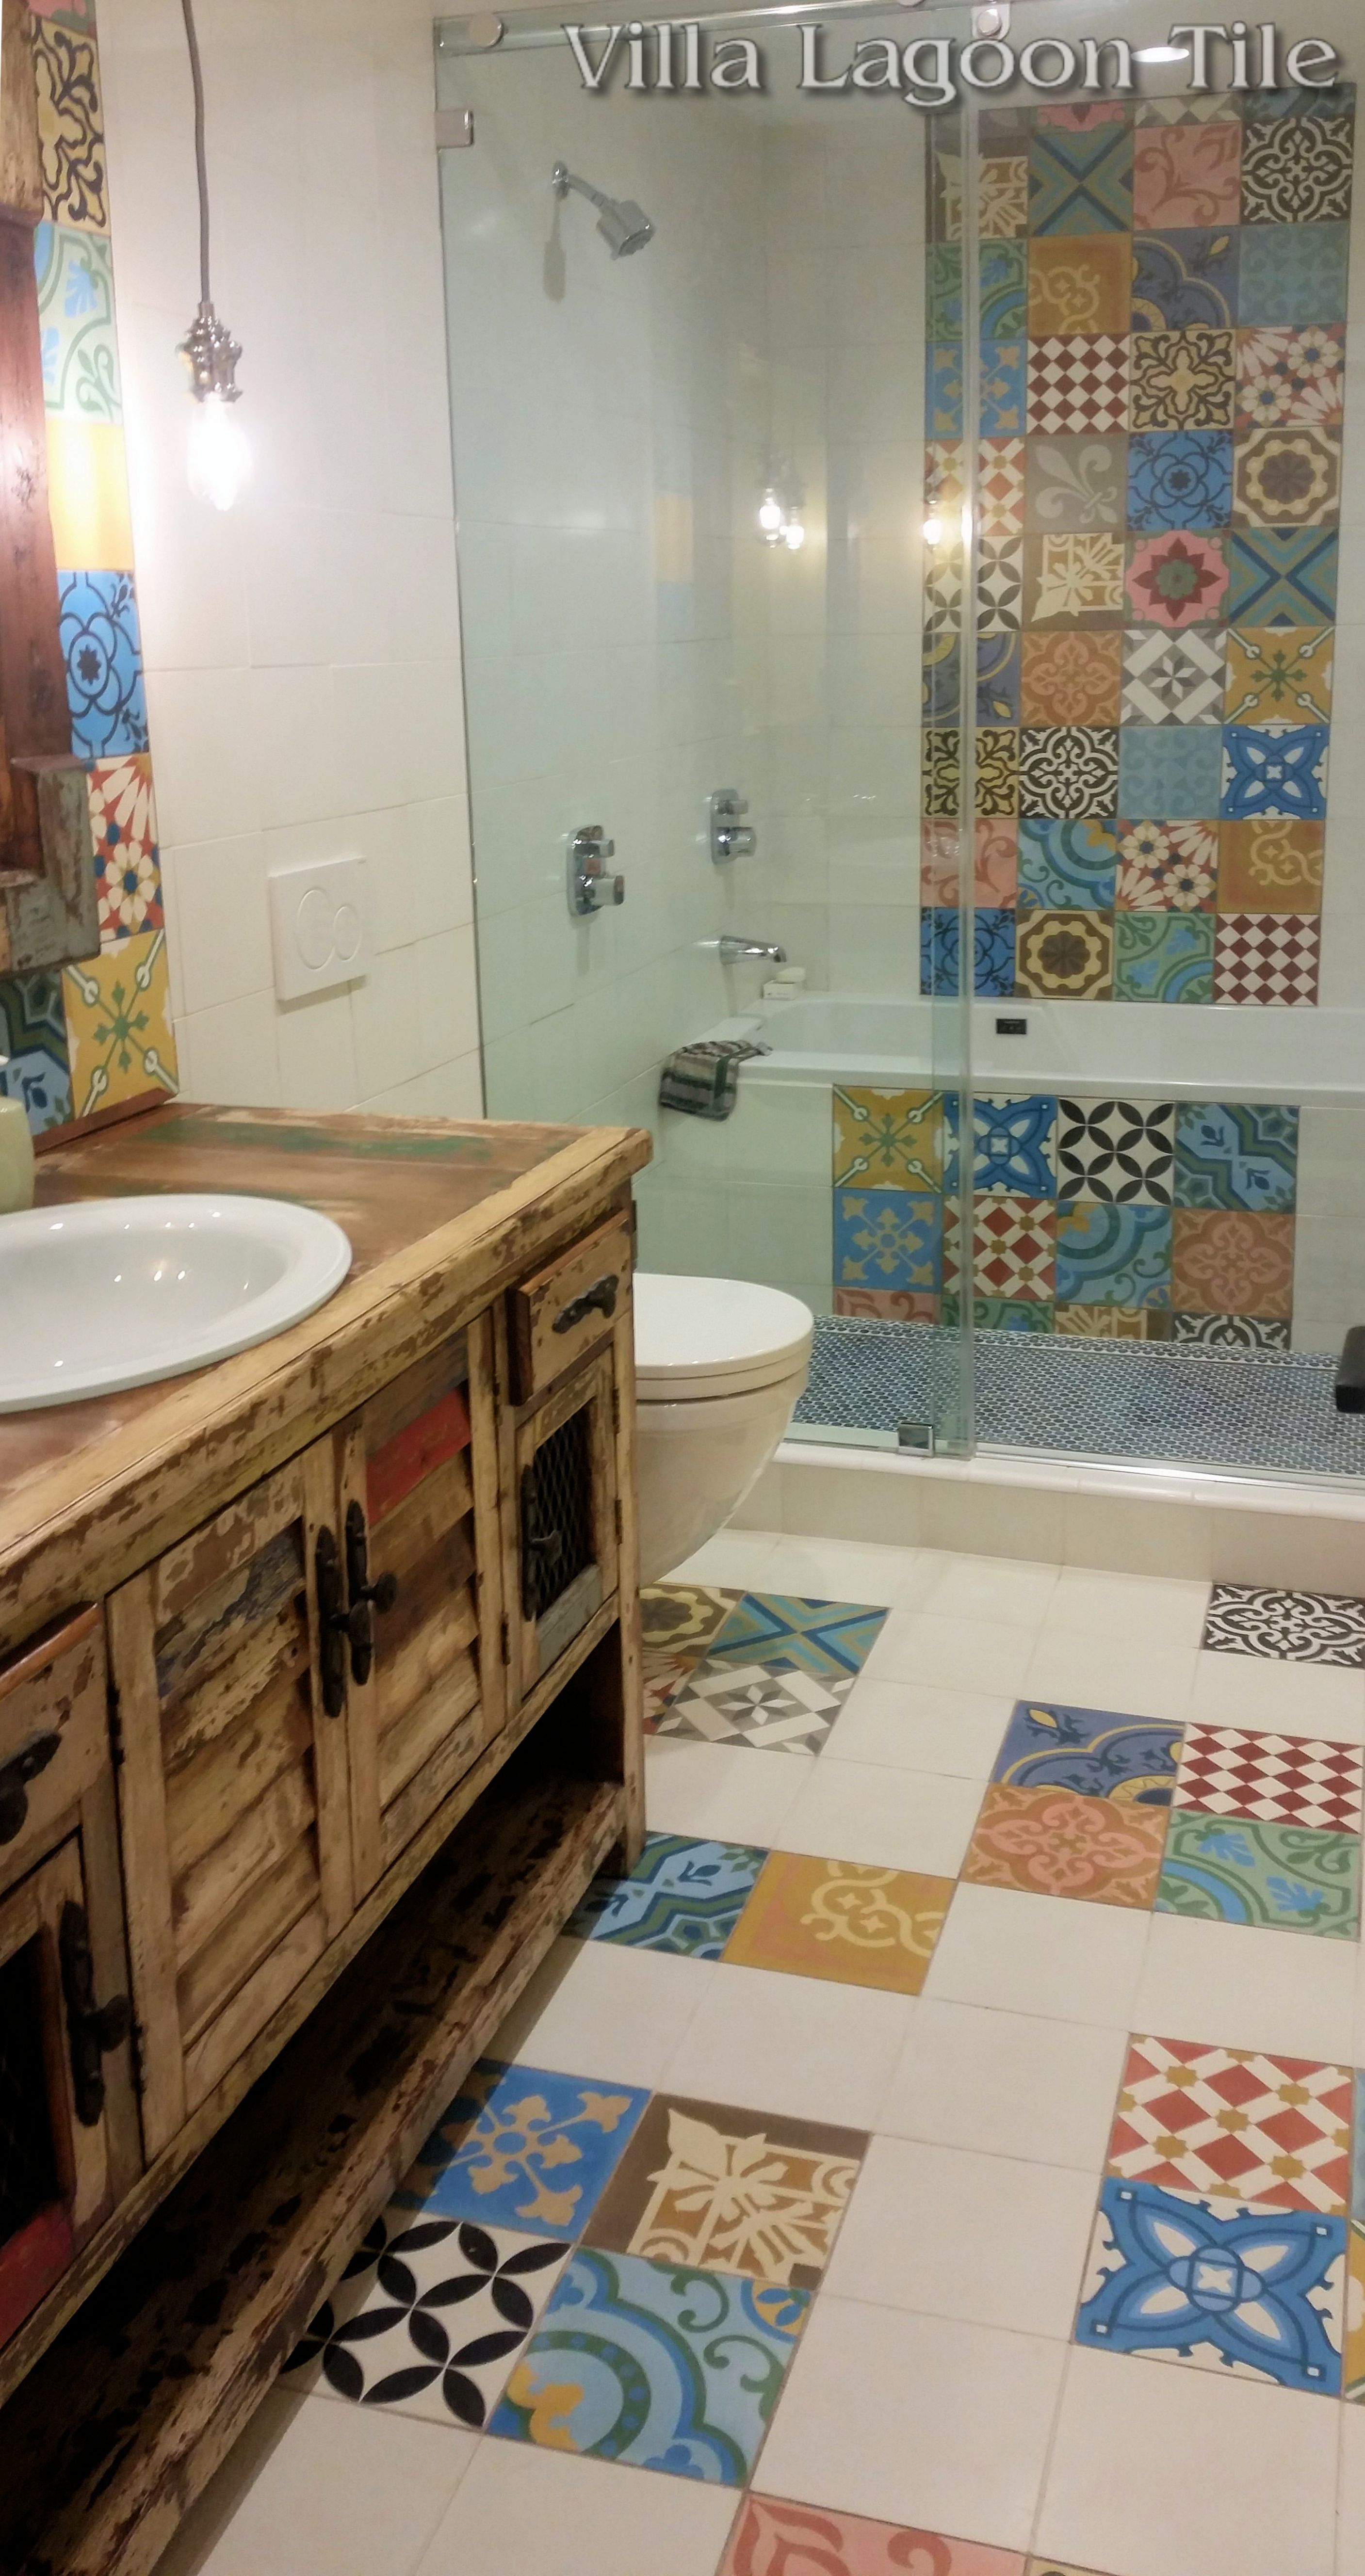 Patchwork Cement Tile Bathroom Floor Installation from Villa